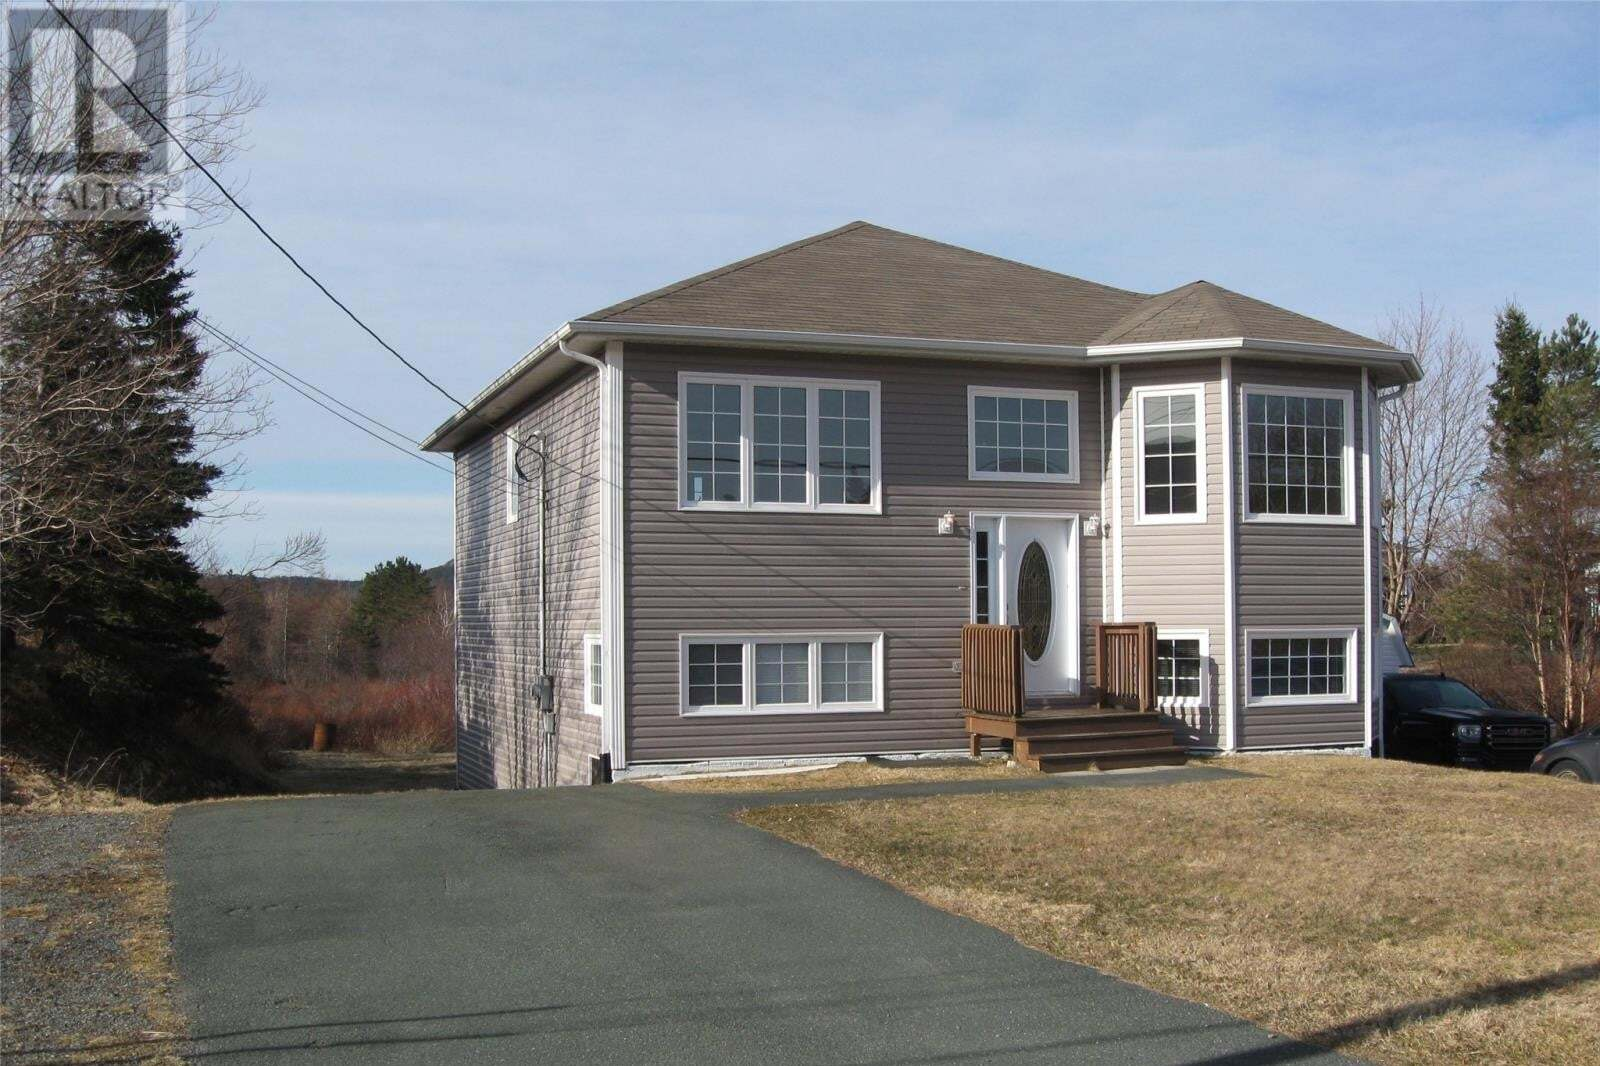 House for sale at 2 Butterpot Rd Holyrood Newfoundland - MLS: 1218418